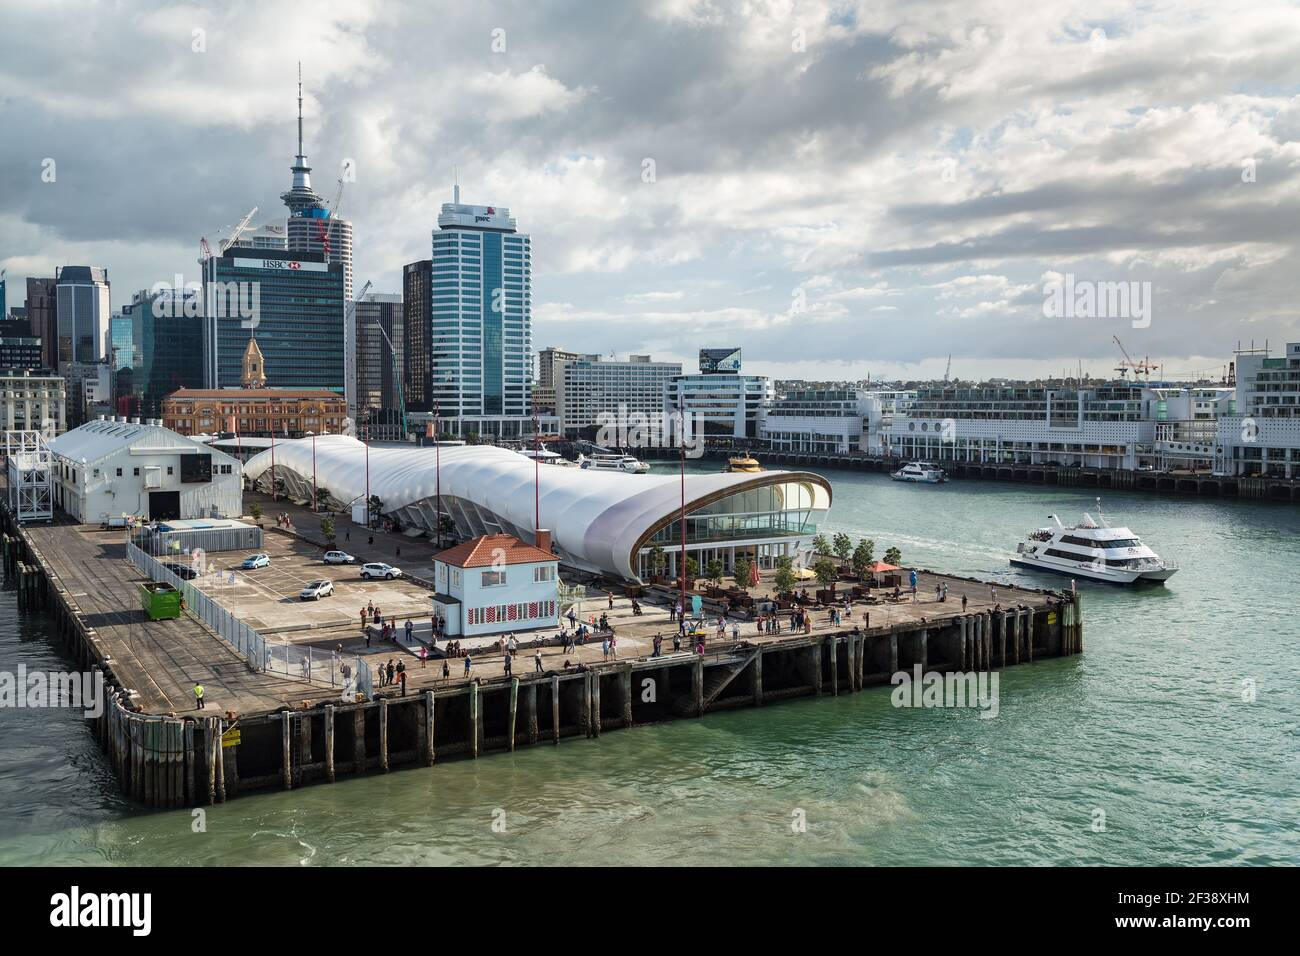 Queen S Wharf Auckland New Zealand With The City Skyline Behind On The Wharf Is The Cloud A Uniquely Shaped Events Venue Stock Photo Alamy New zealand city buildings sea clouds